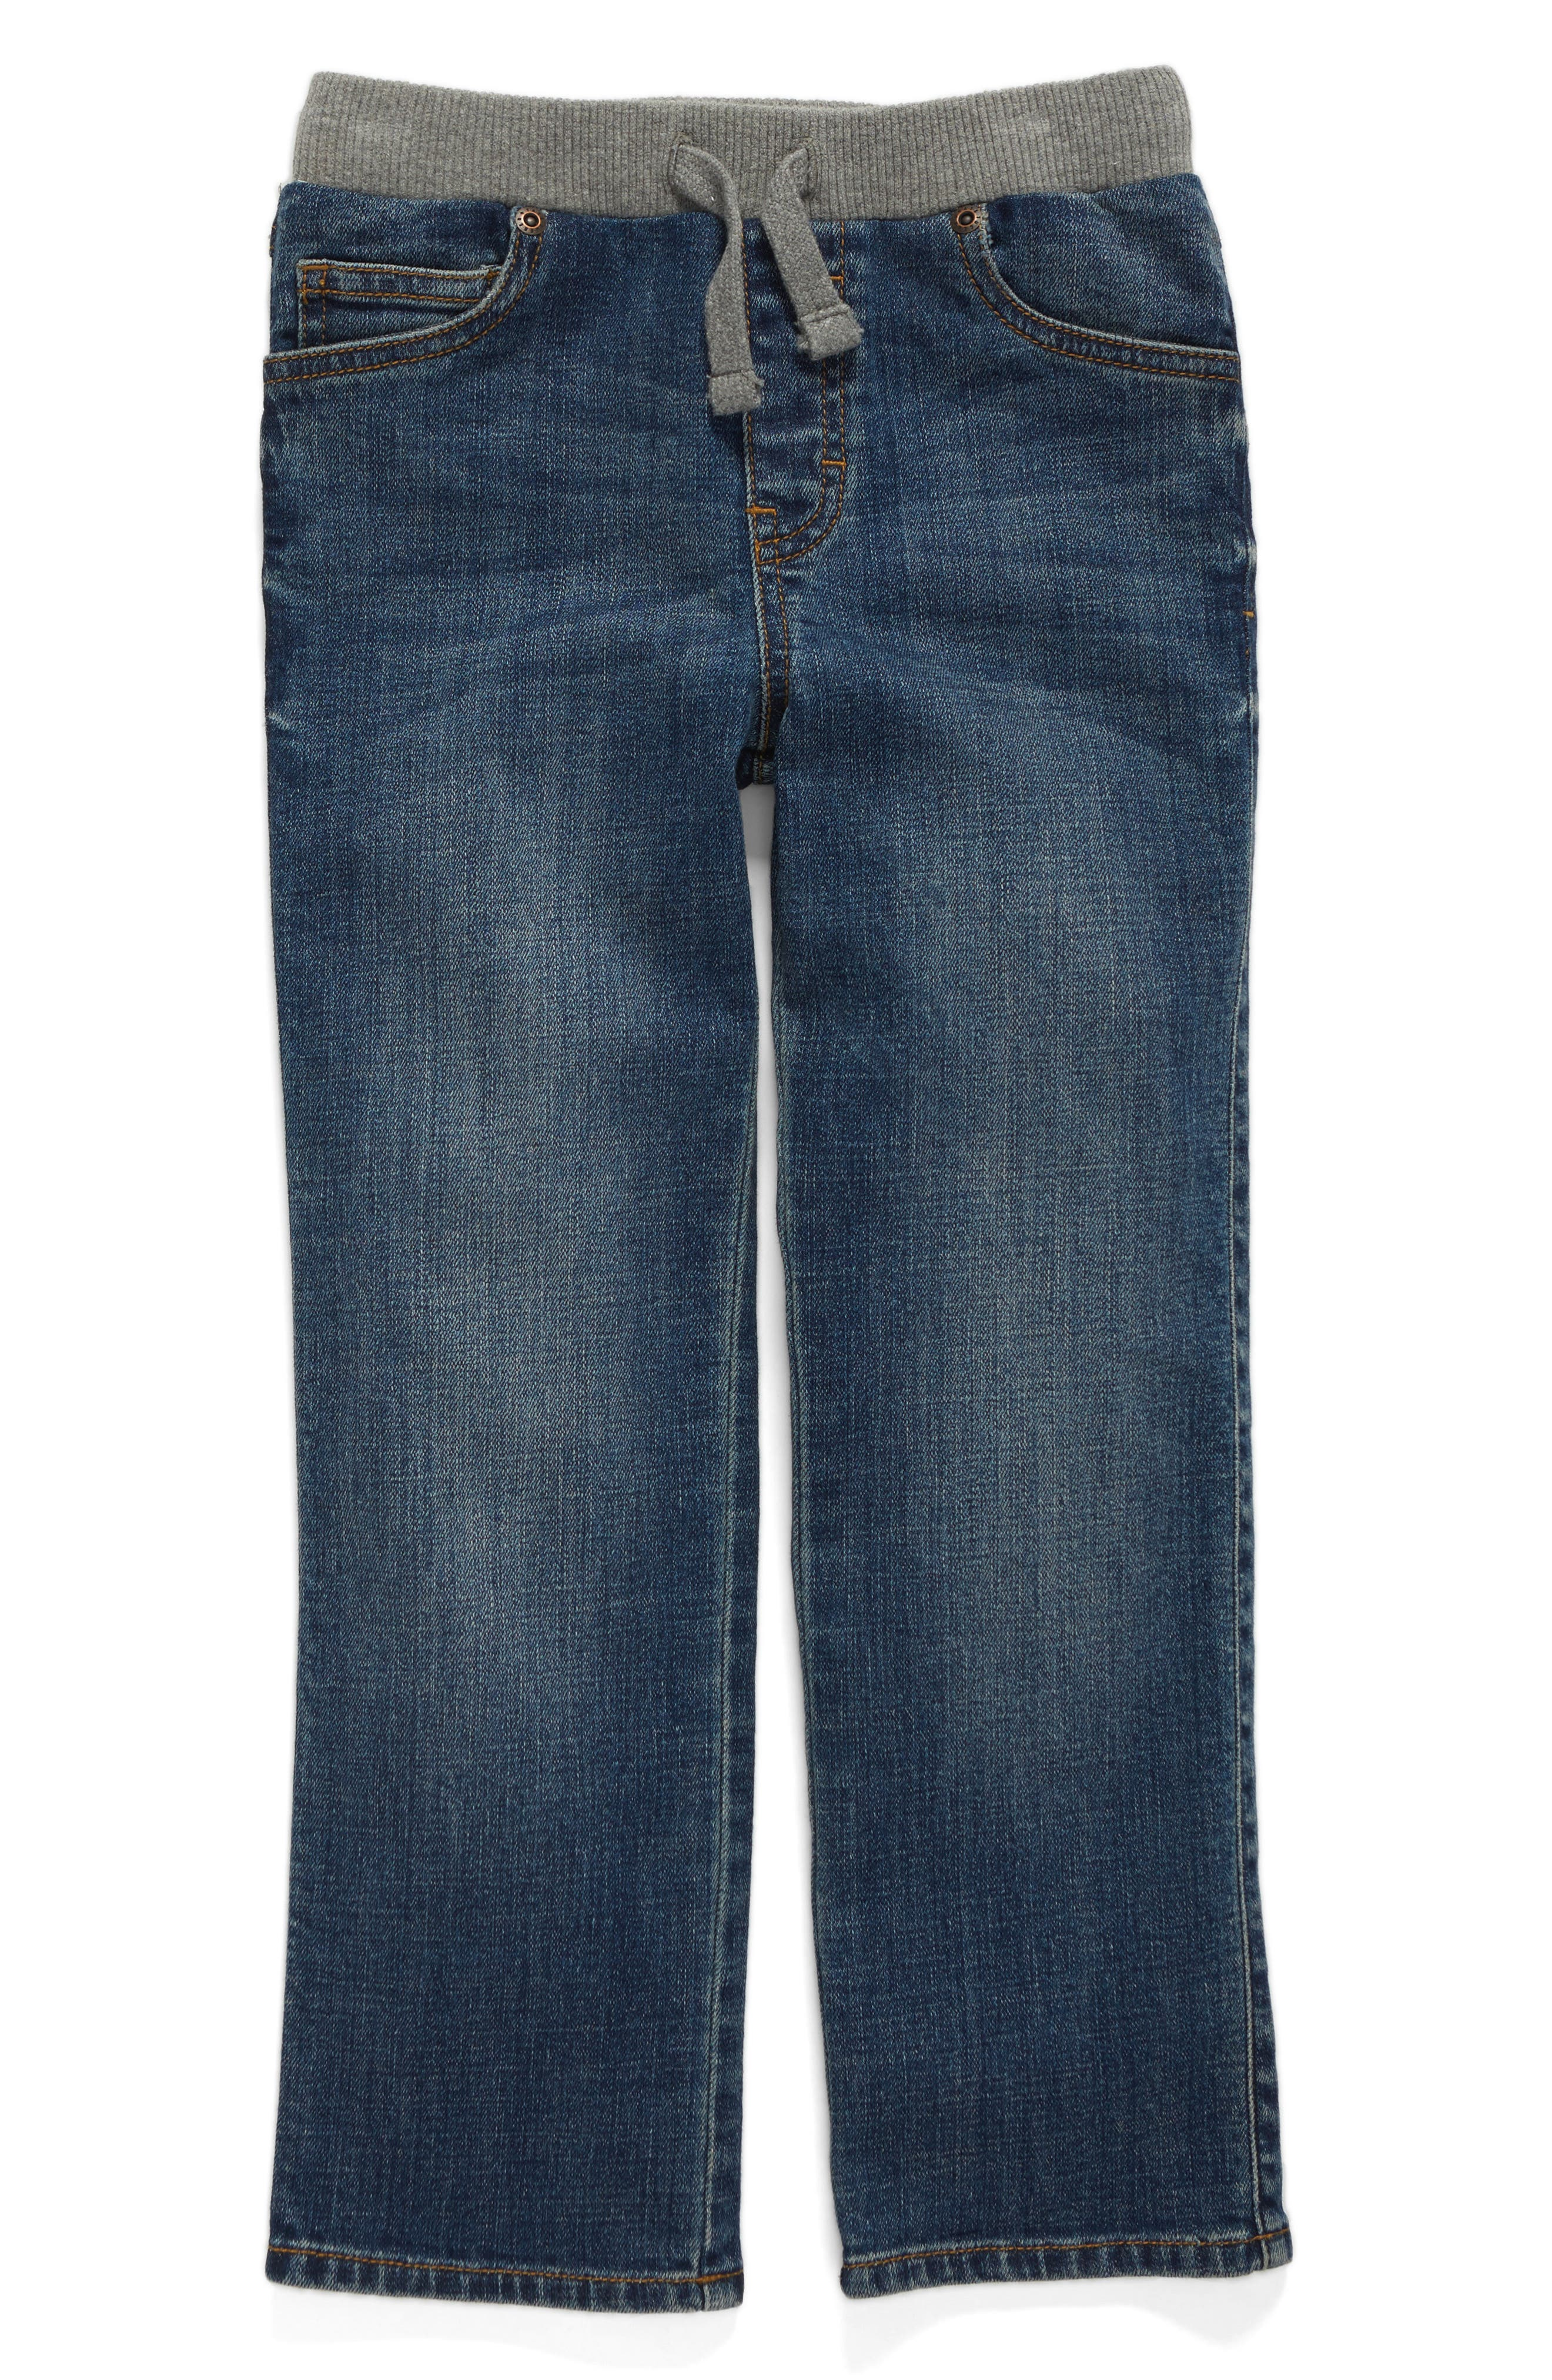 Straight Leg Jeans,                             Alternate thumbnail 2, color,                             401